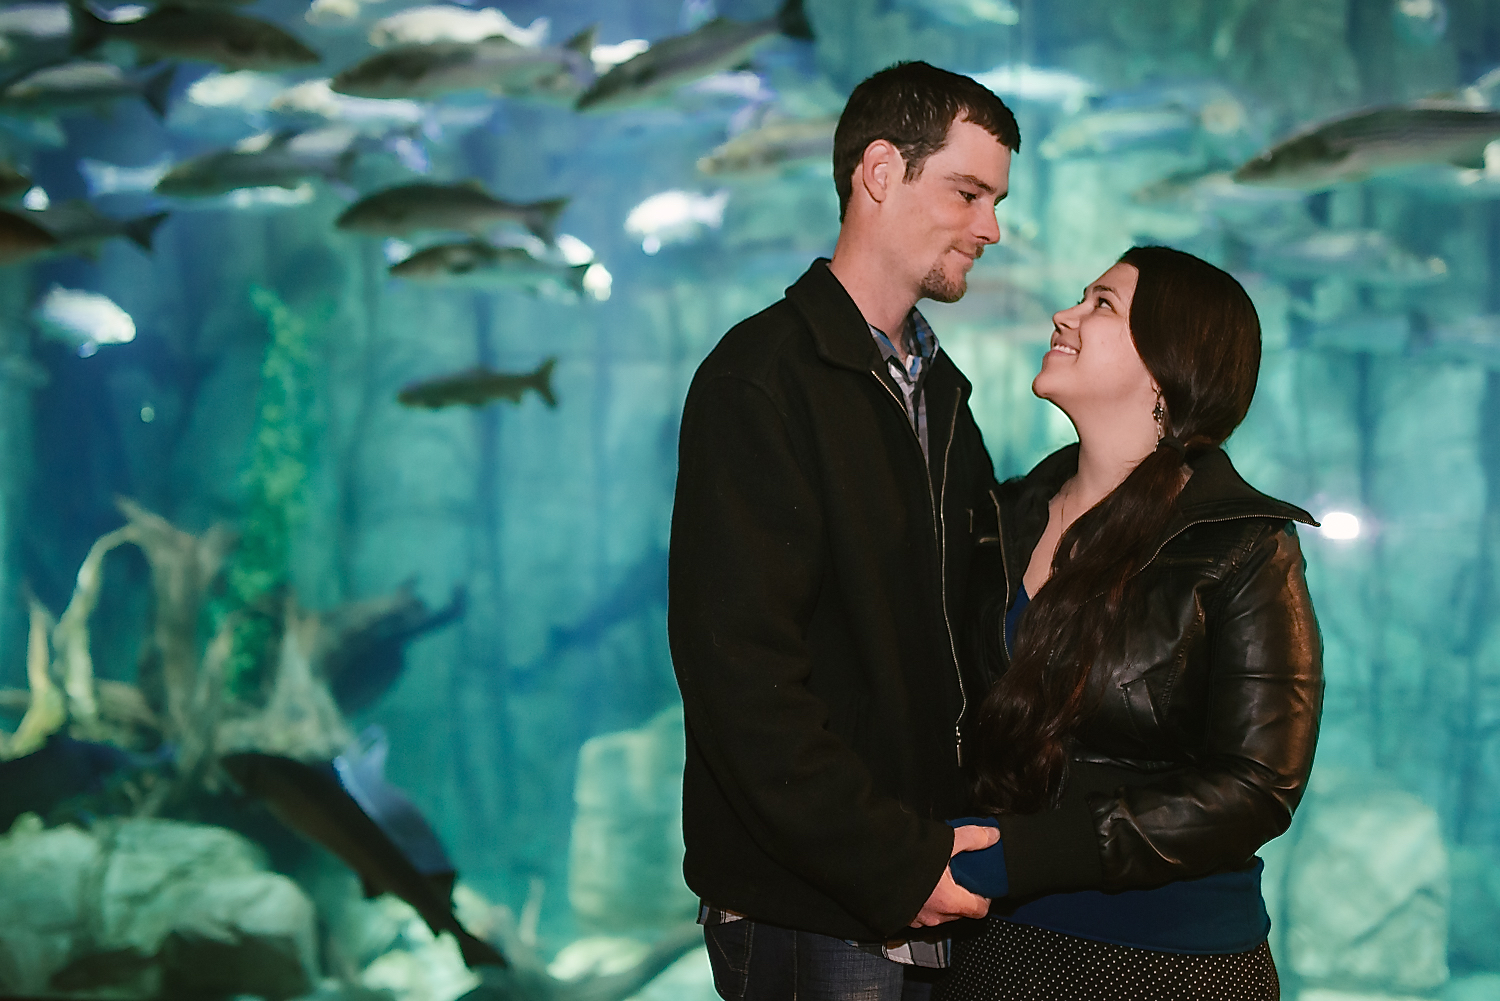 Ocean-themed underwater engagement shoot with fish in the background // Aquarium engagement photos by Maddie Mae Photography